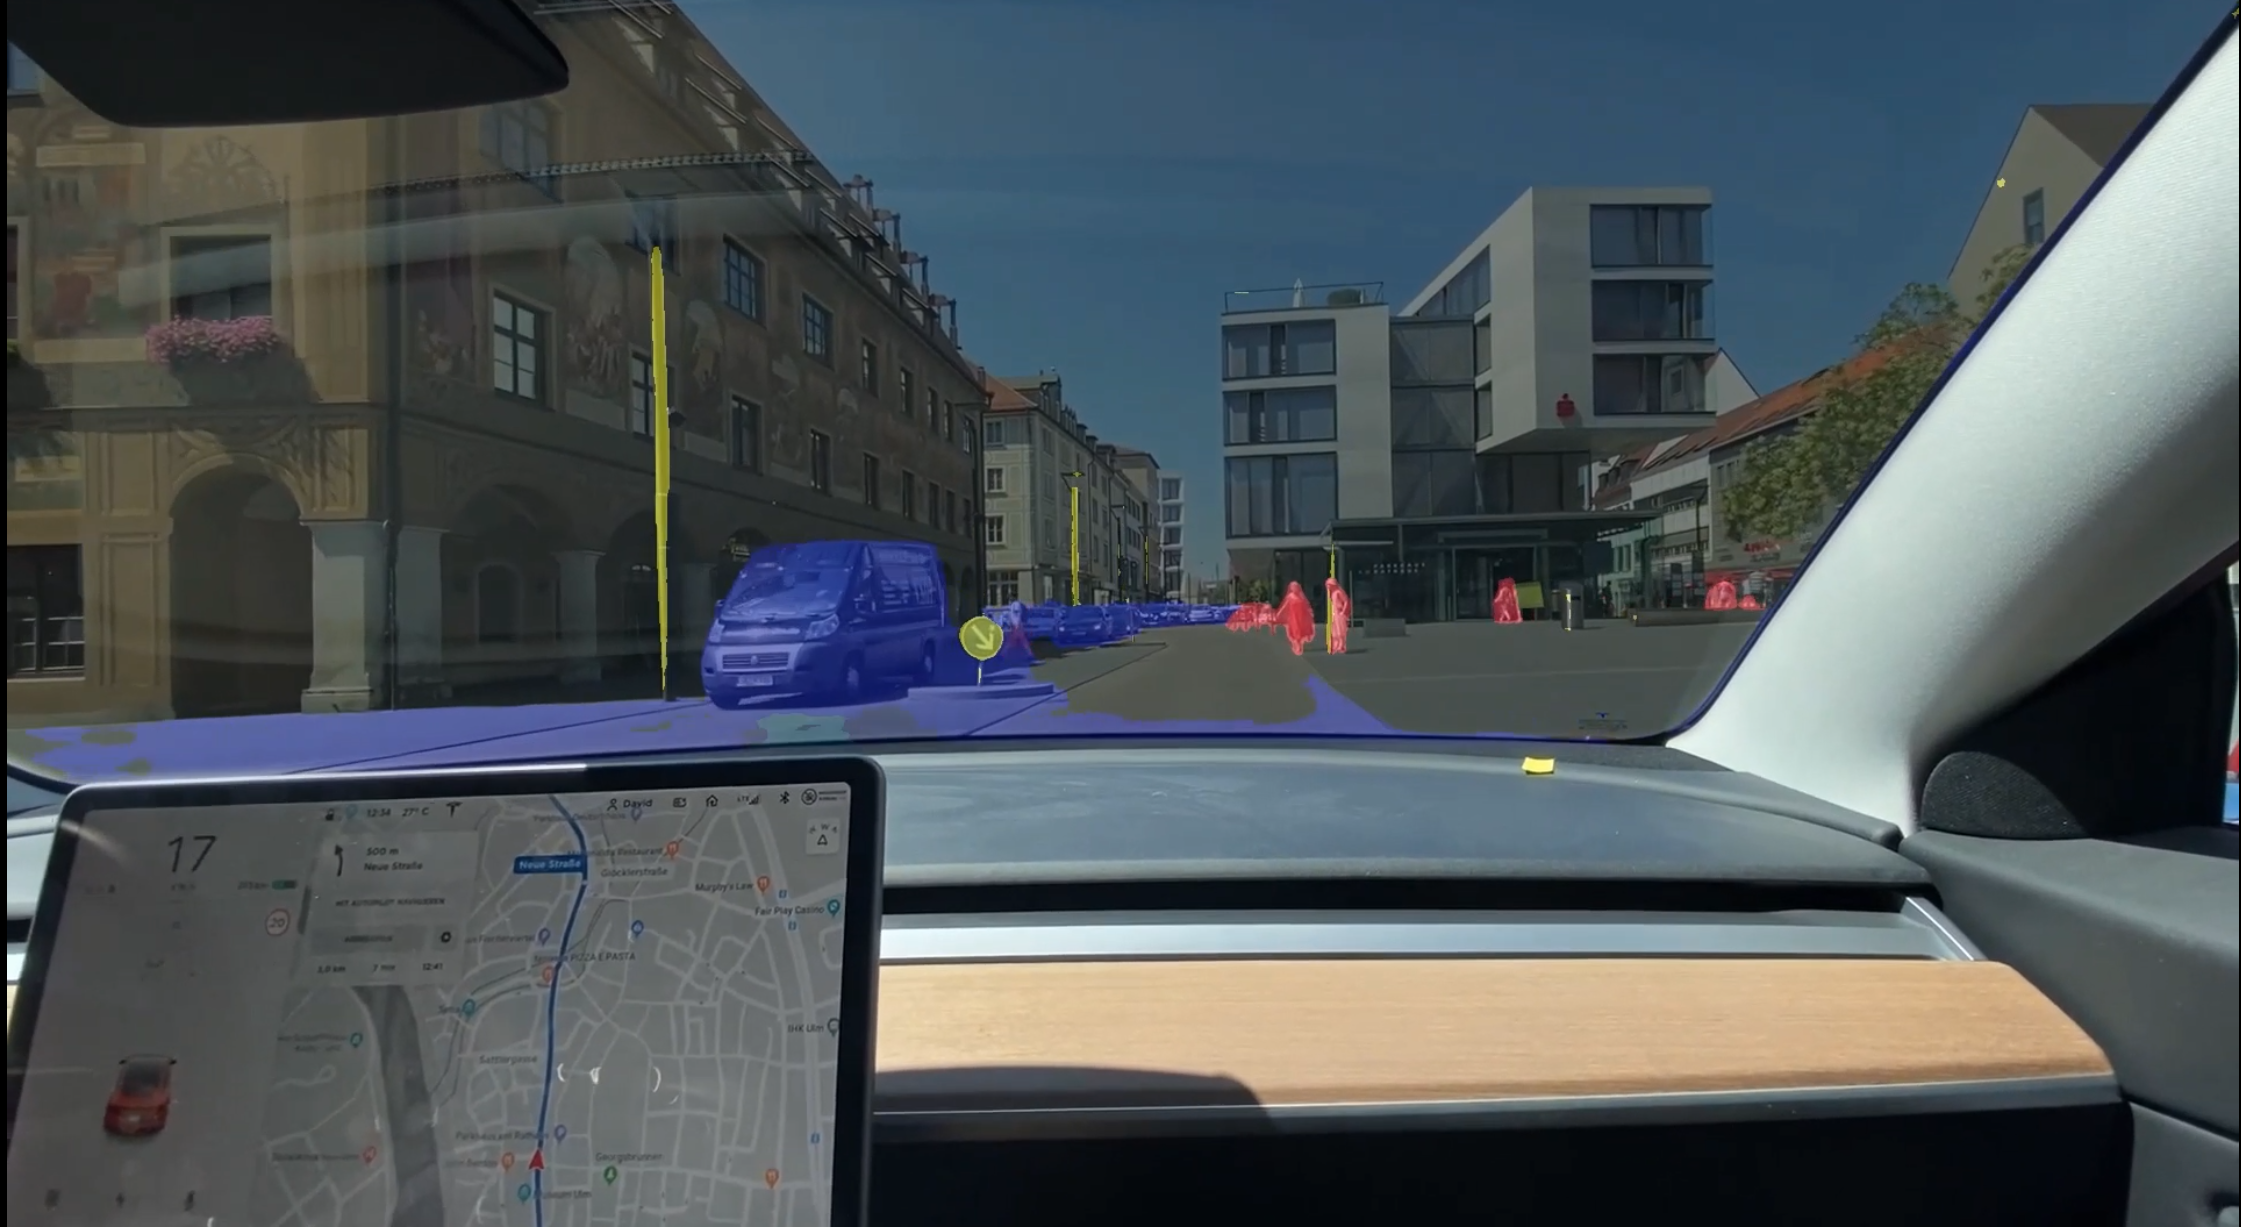 Effects of Semantic Segmentation Visualization on Trust, Situation Awareness, and Cognitive Load in Highly Automated Vehicles